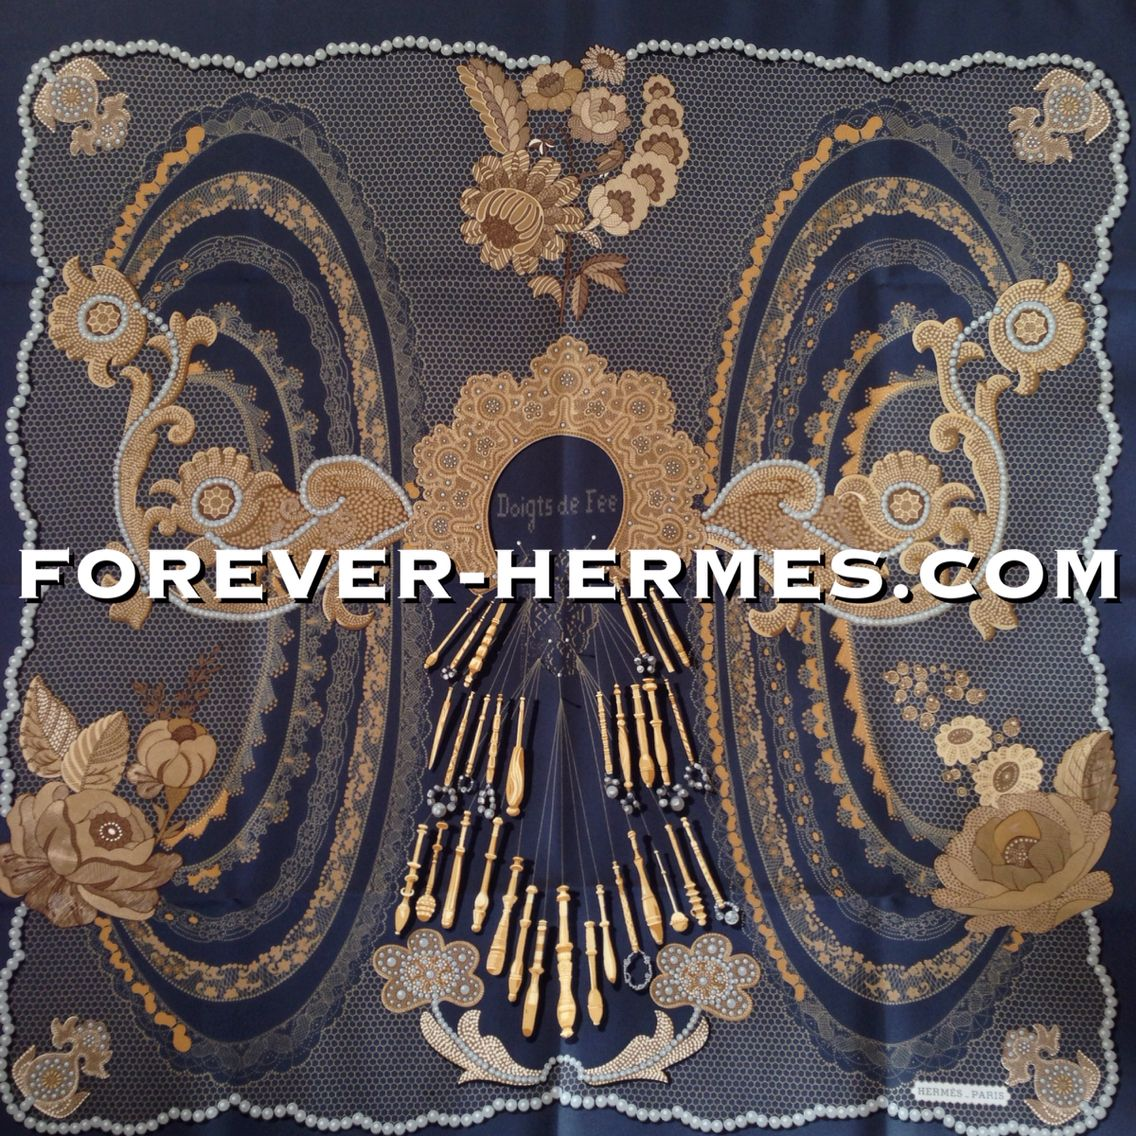 New Zealand Hermes Scarf Discount Embroidery 04a0c 3222a